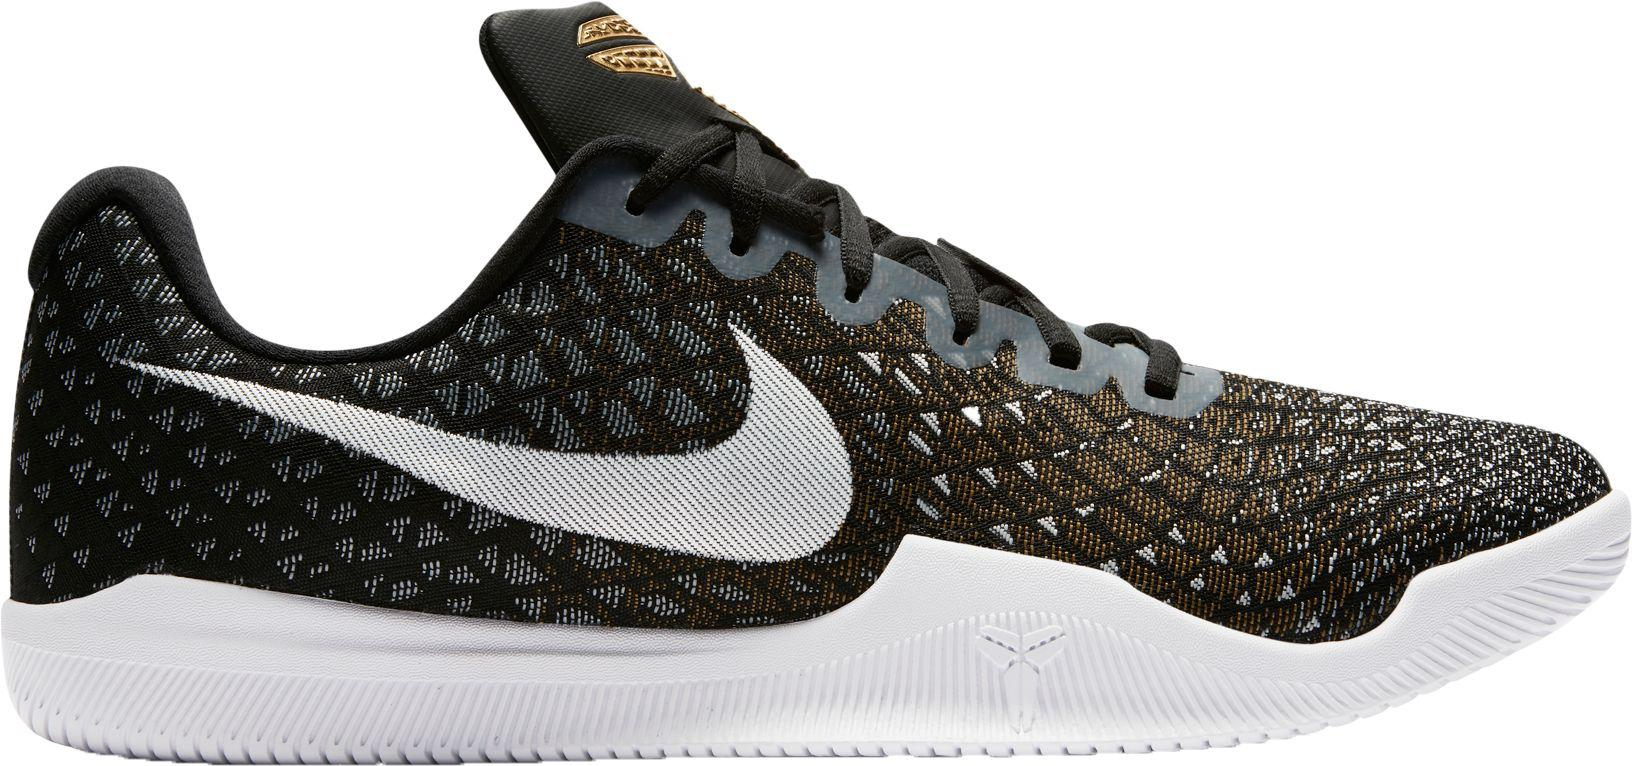 Lyst - Nike Kobe Mamba Instinct Basketball Shoes In Black For Men-2736